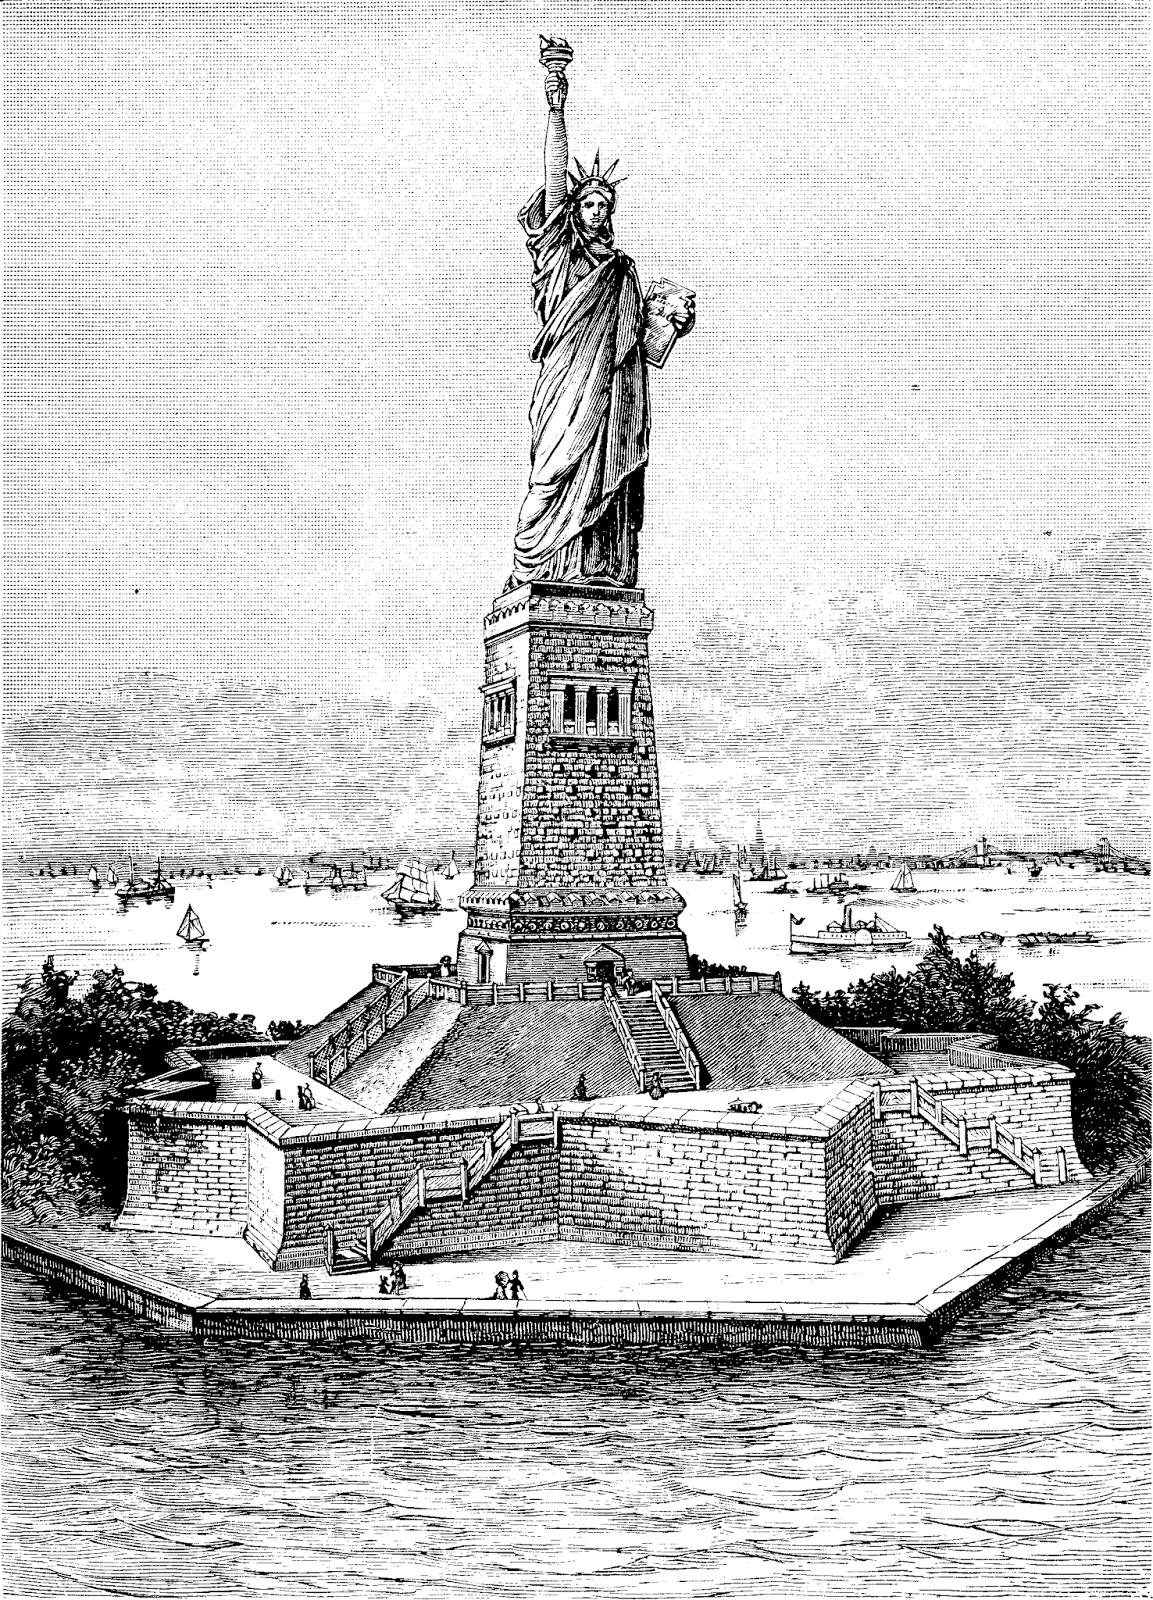 liberty enlightening the world essay Statue of liberty enlightening the world the new york trust fund, 1943 gray, walter interpreting american democracy in france: the career of edouard laboulaye.